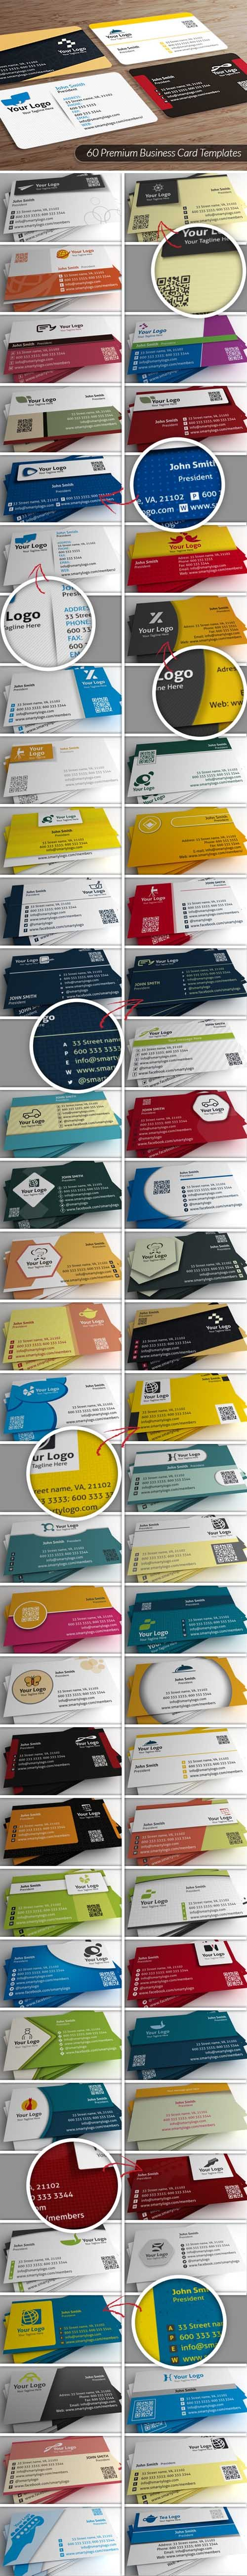 60 Fully Customizable Business Cards PSD Templates